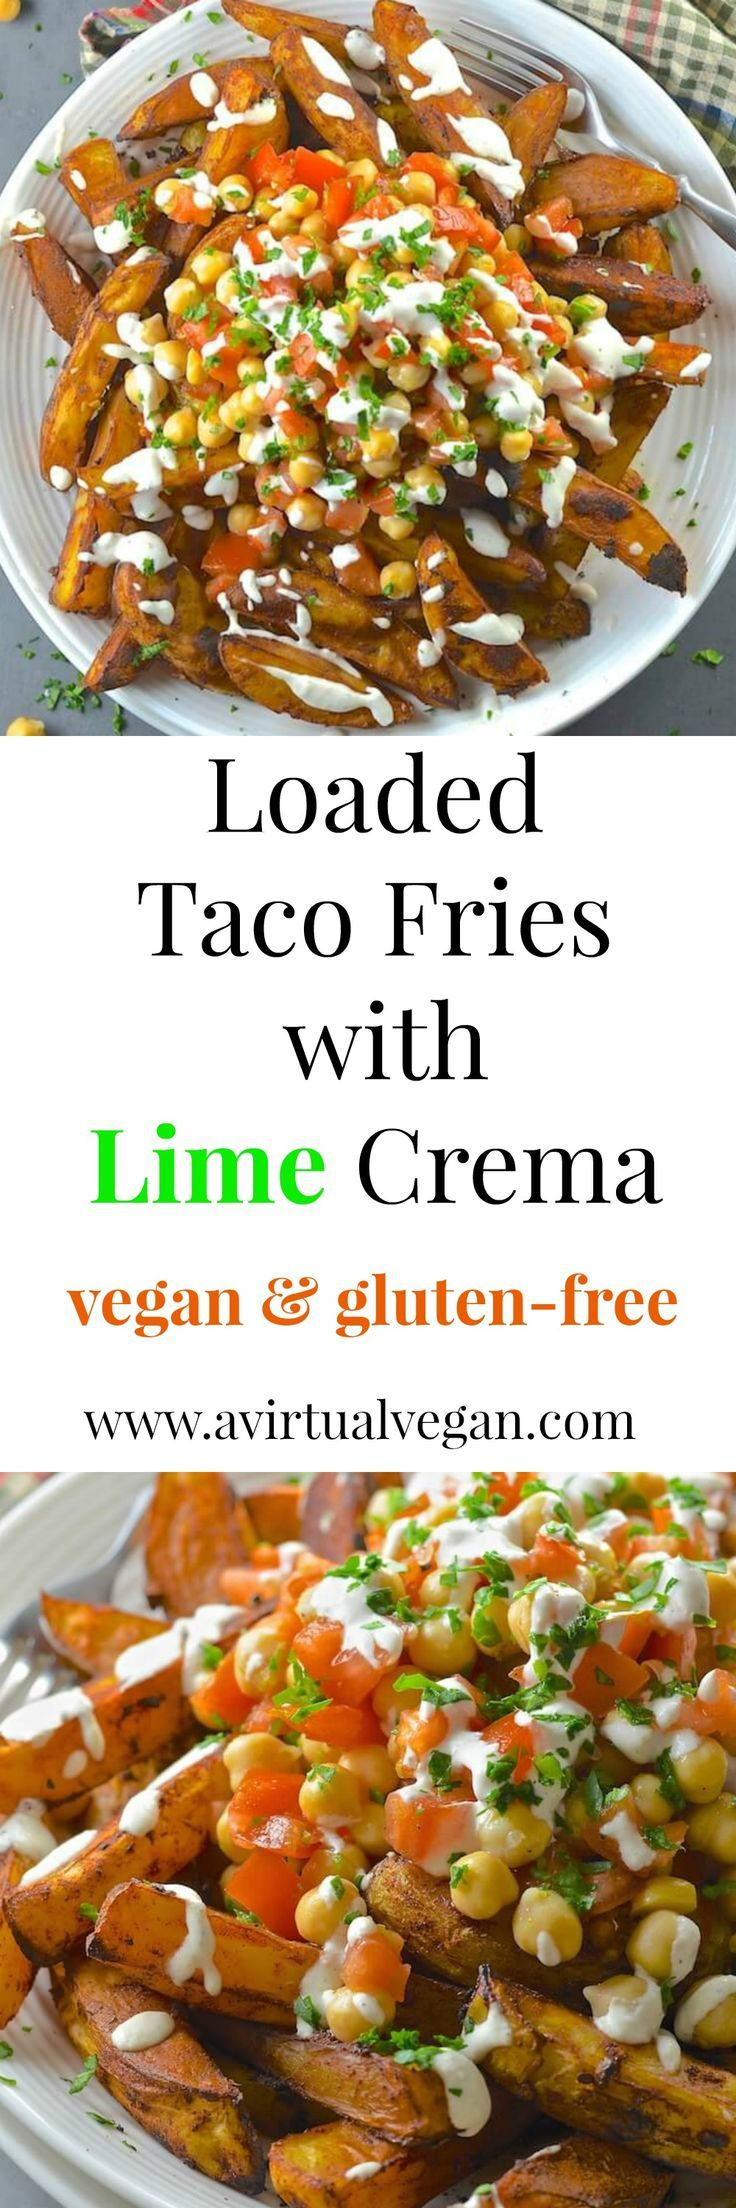 Loaded Taco Fries with a generous drizzle of Lime Crema. Healthy, oil-free & delicious. via @avirtualvegan